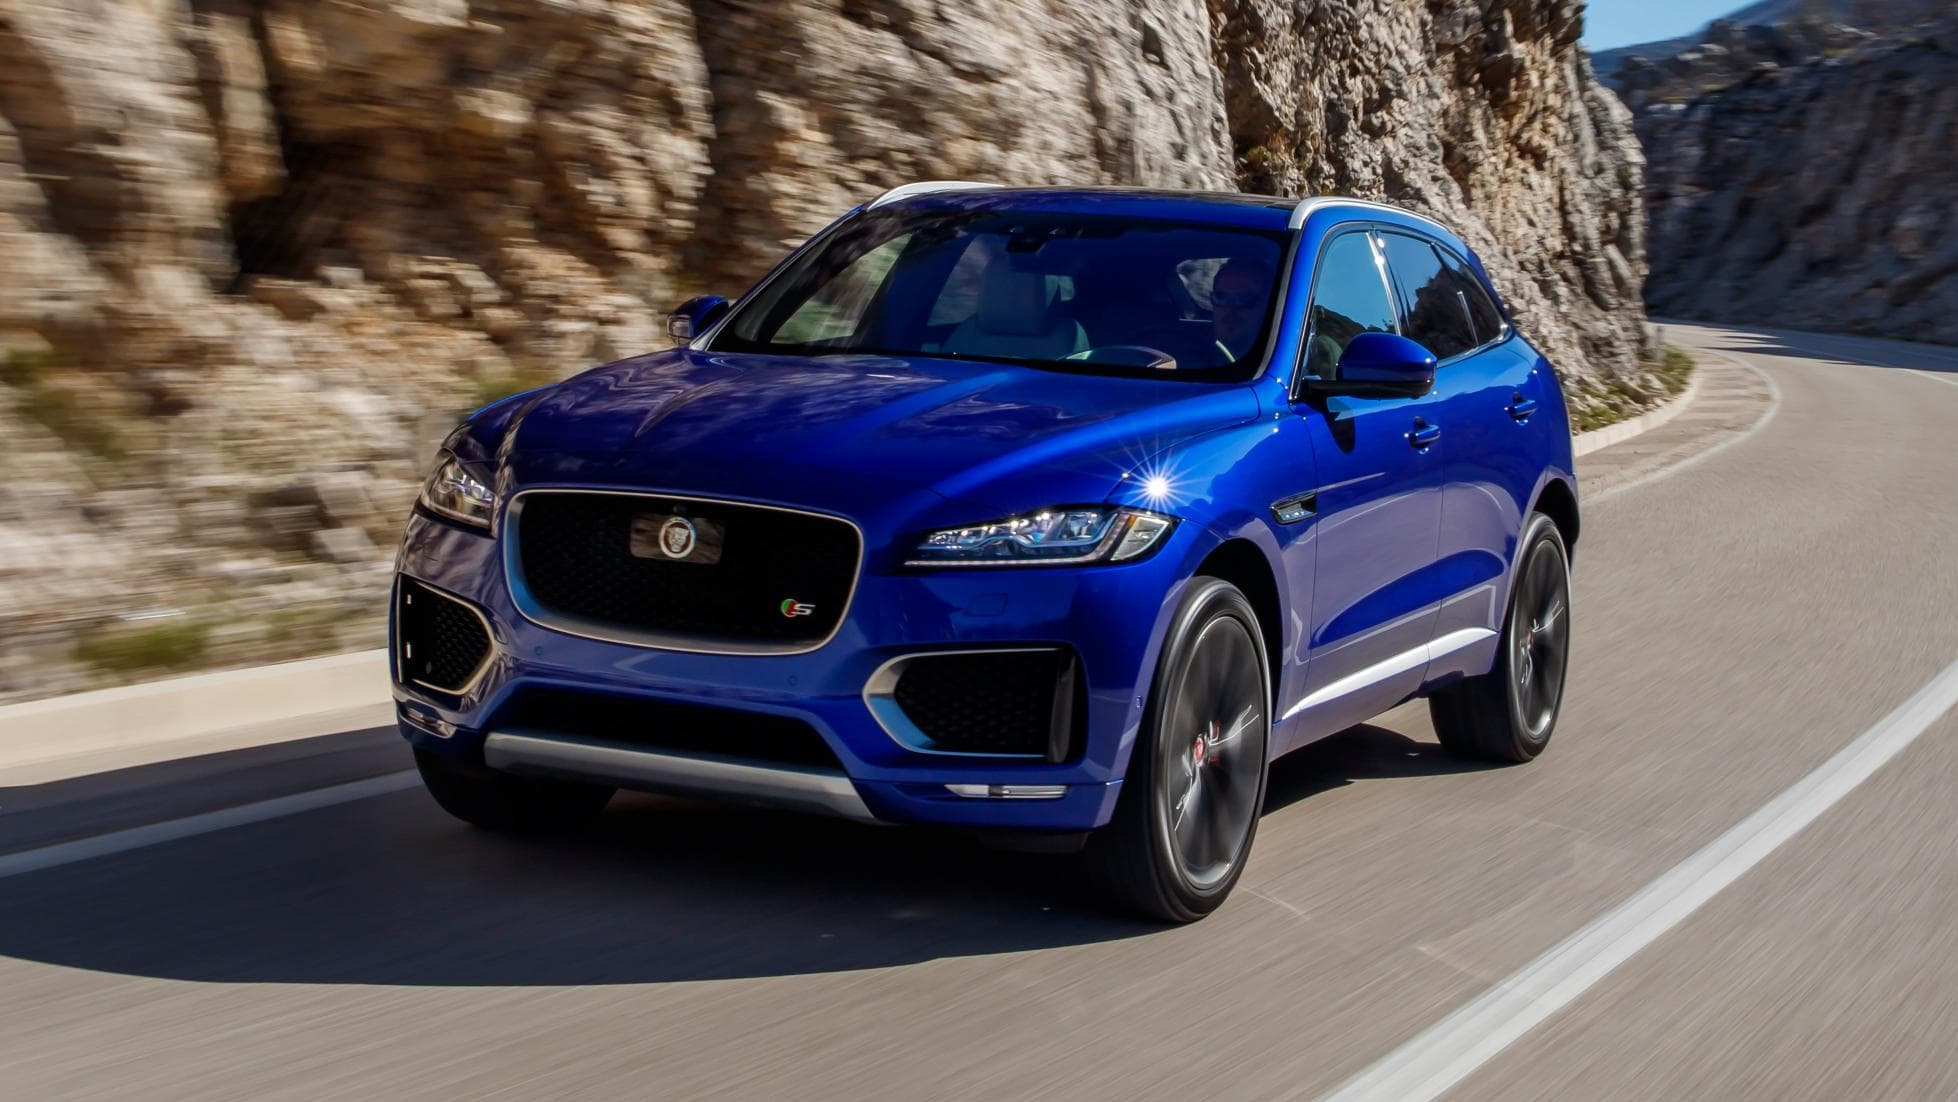 Jaguar F-Pace Wallpapers